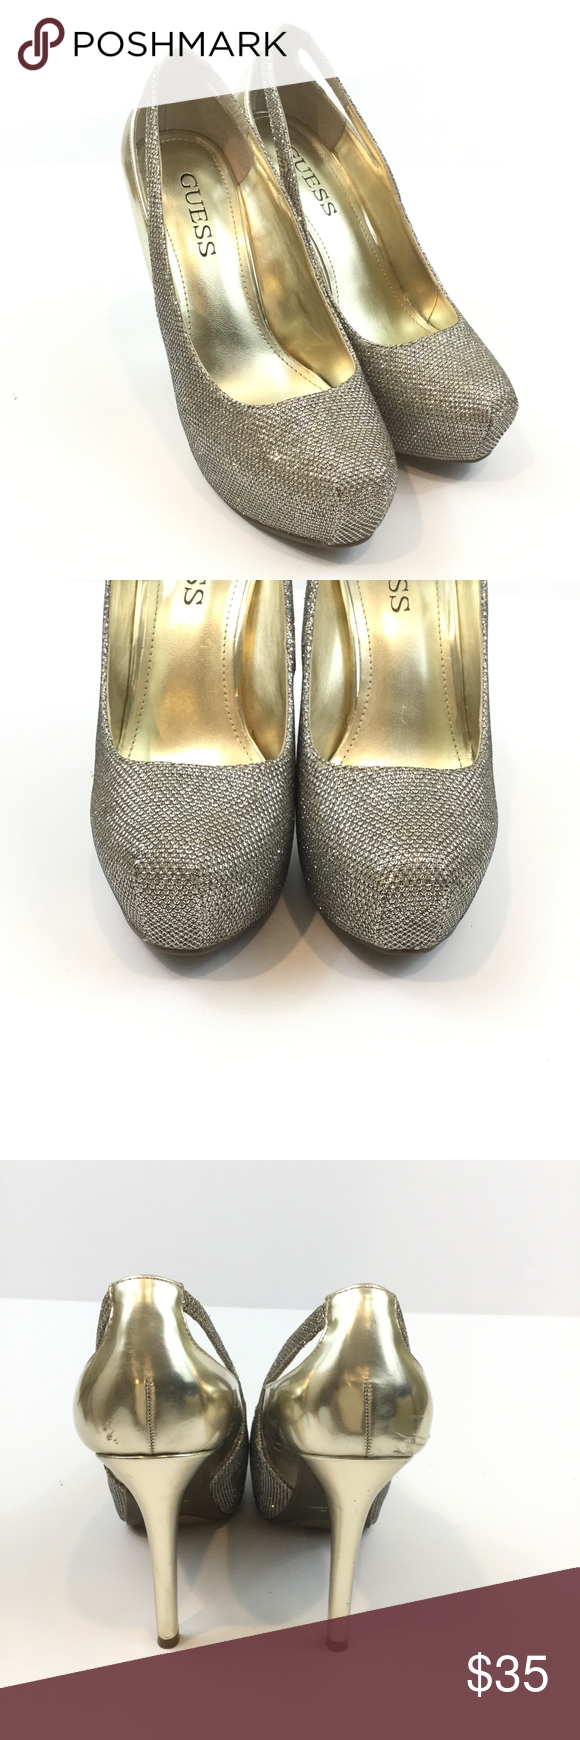 64758d7a4d9d Guess Gold Sparkle Women s Pumps Size 7.5 Guess Gold Sparkle Women s Pumps  Size 7.5 Preowned women s heels in good condition with minor scuffs See  photos ...